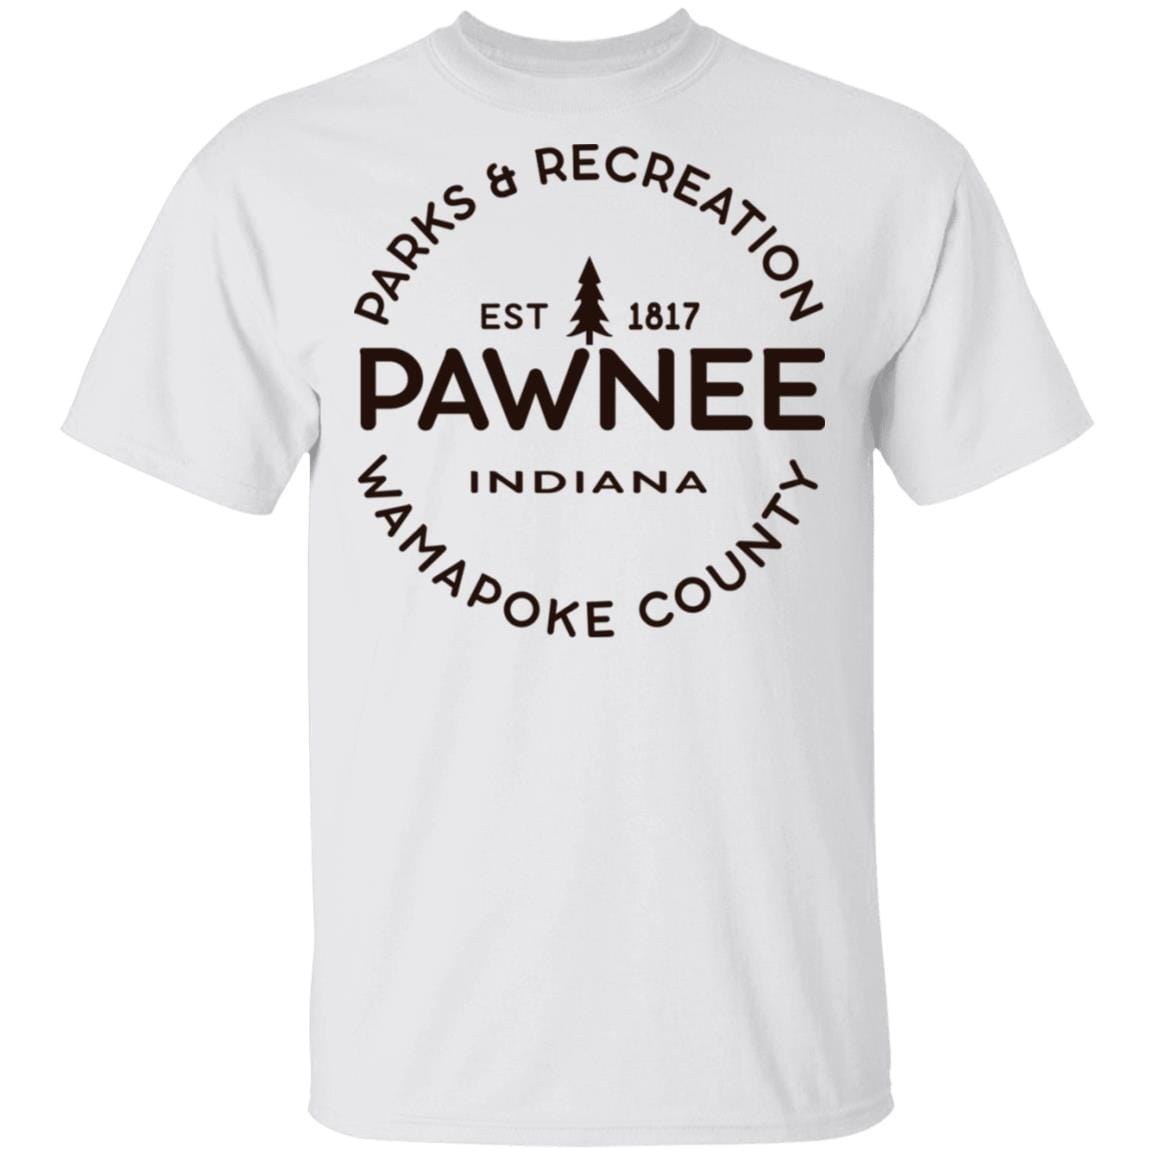 Parks & Recreation Pawnee Indiana 1817 Wamapoke Country T-Shirts, Hoodies 1049-9974-87589422-48300 - Tee Ript